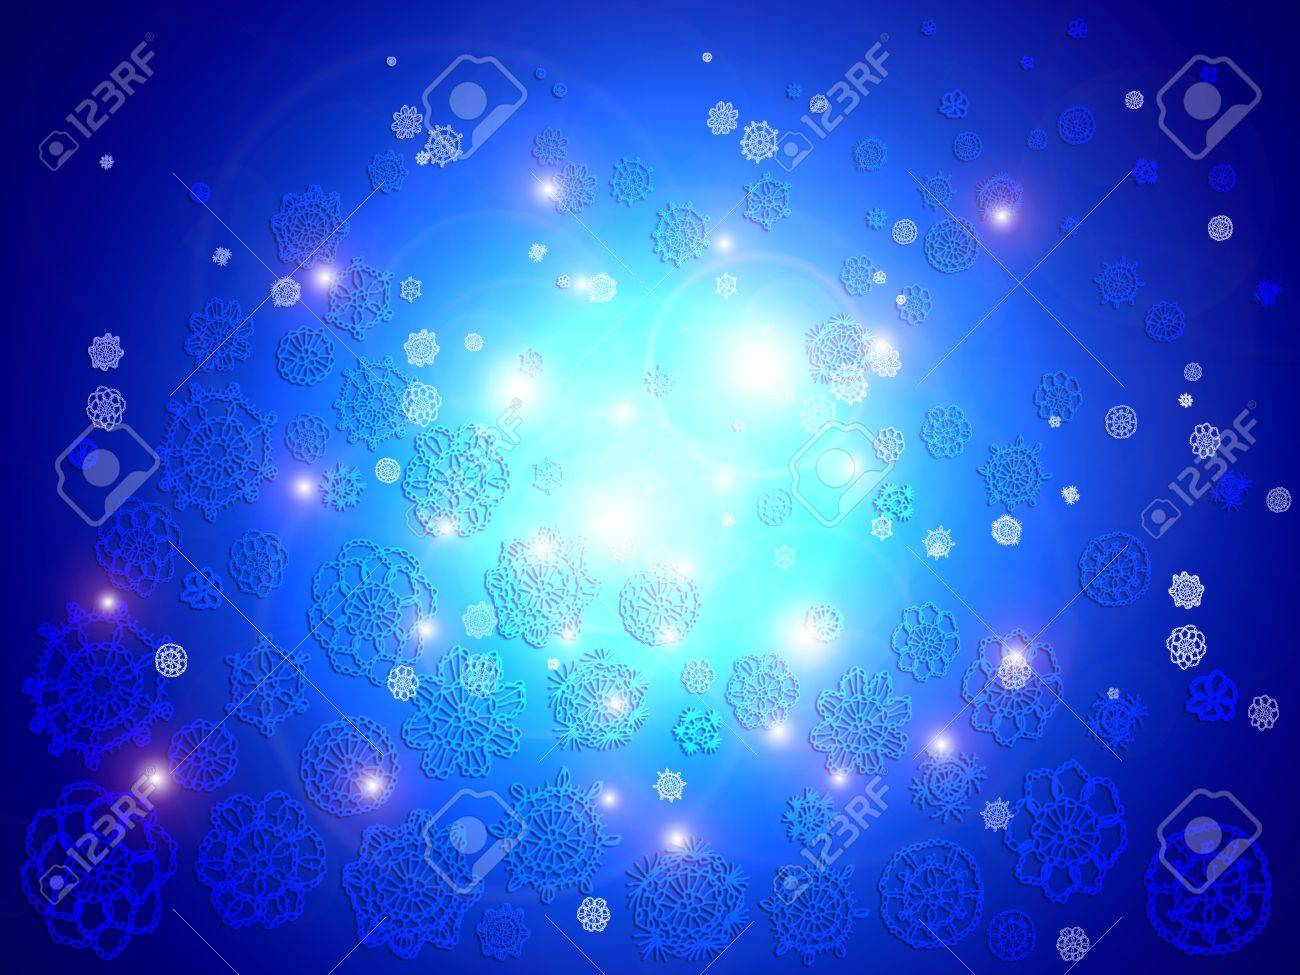 Blue oceanic lights floating composing a brilliant background Stock Photo - 12807734